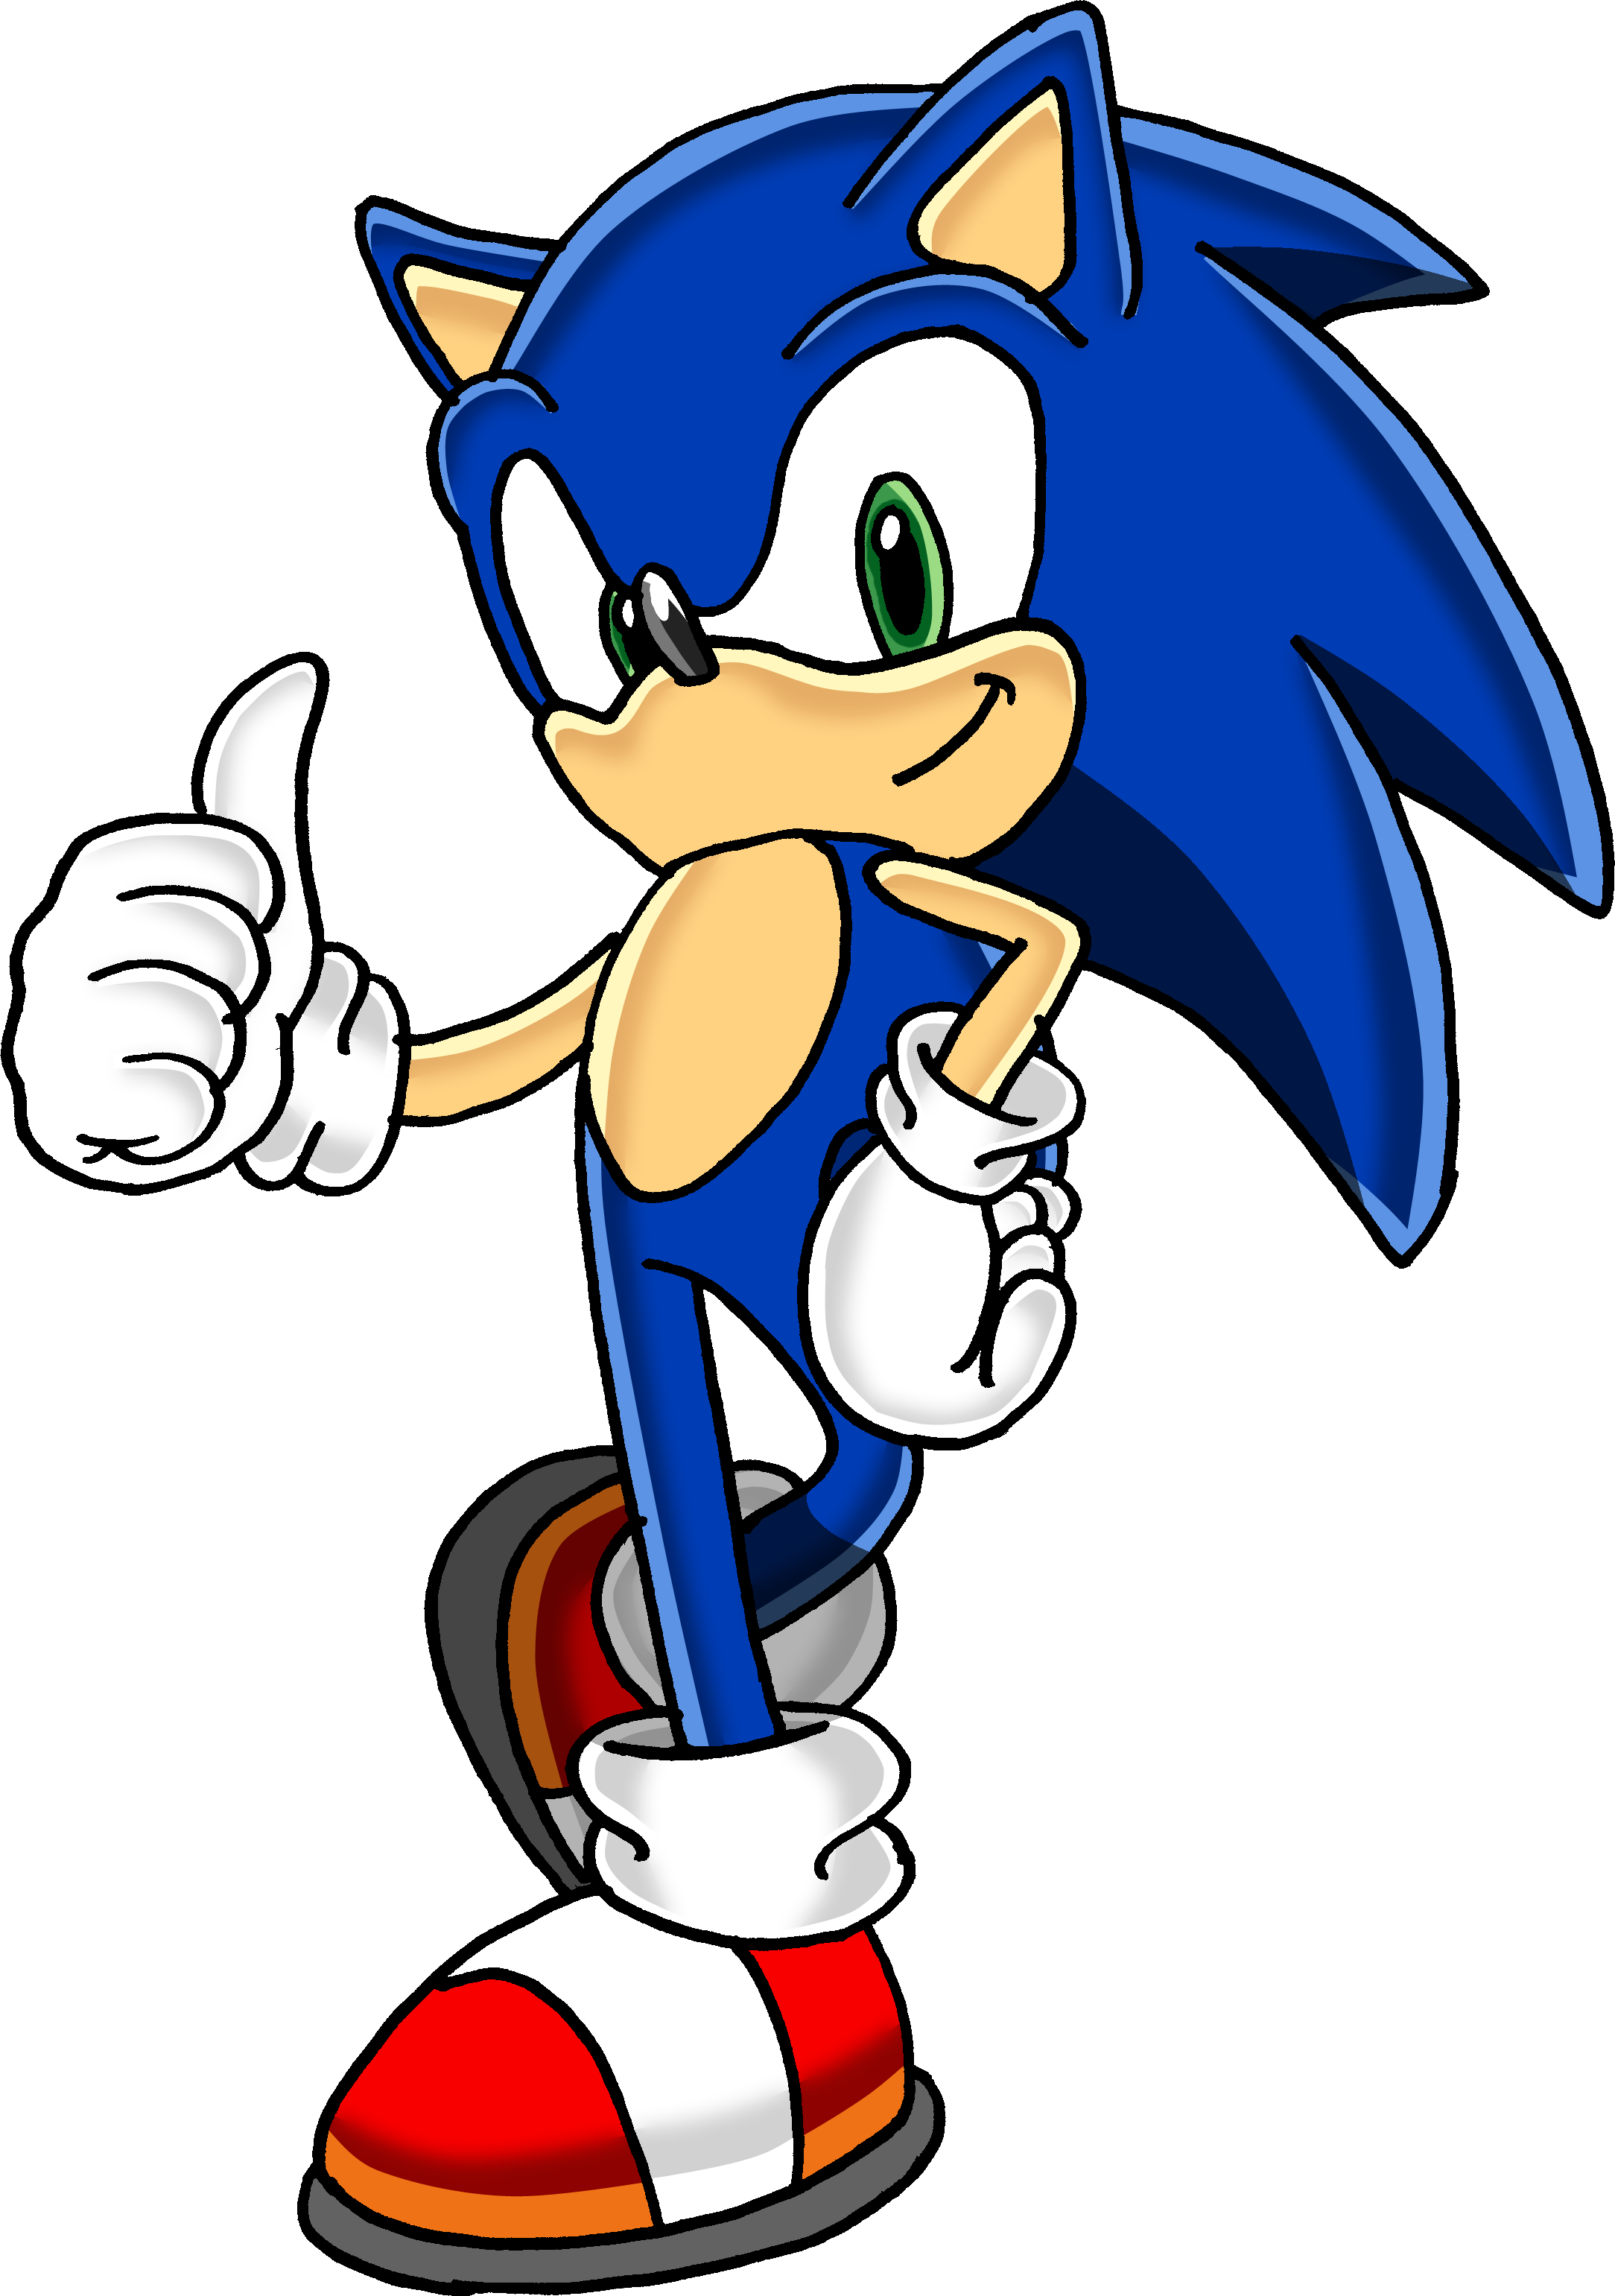 Sonic The Hedgehog Png 13 PNG Image - Sonic The Hedgehog PNG